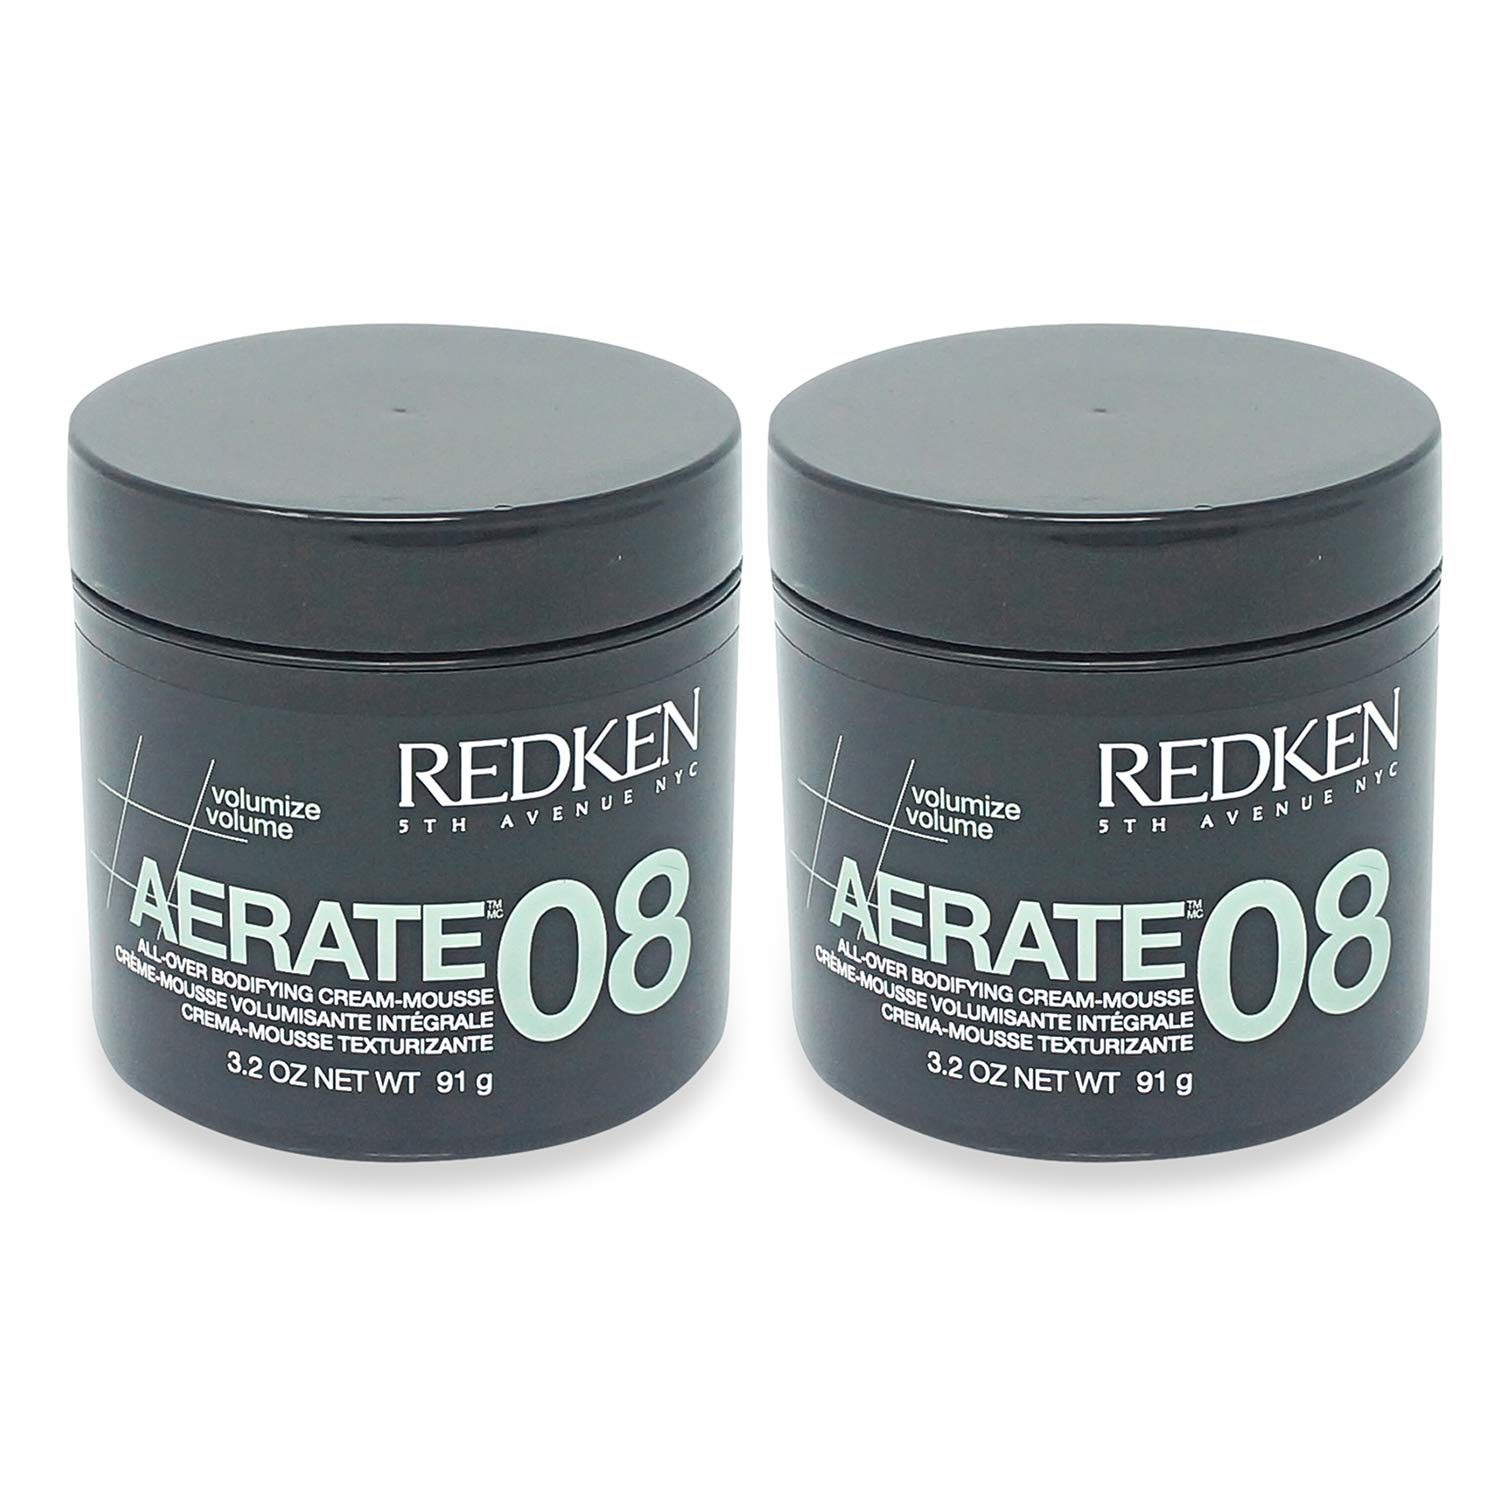 Redken Aerate 08 All-Over Bodifying Cream Mousse, 3.2 Ounce- Pack of 2